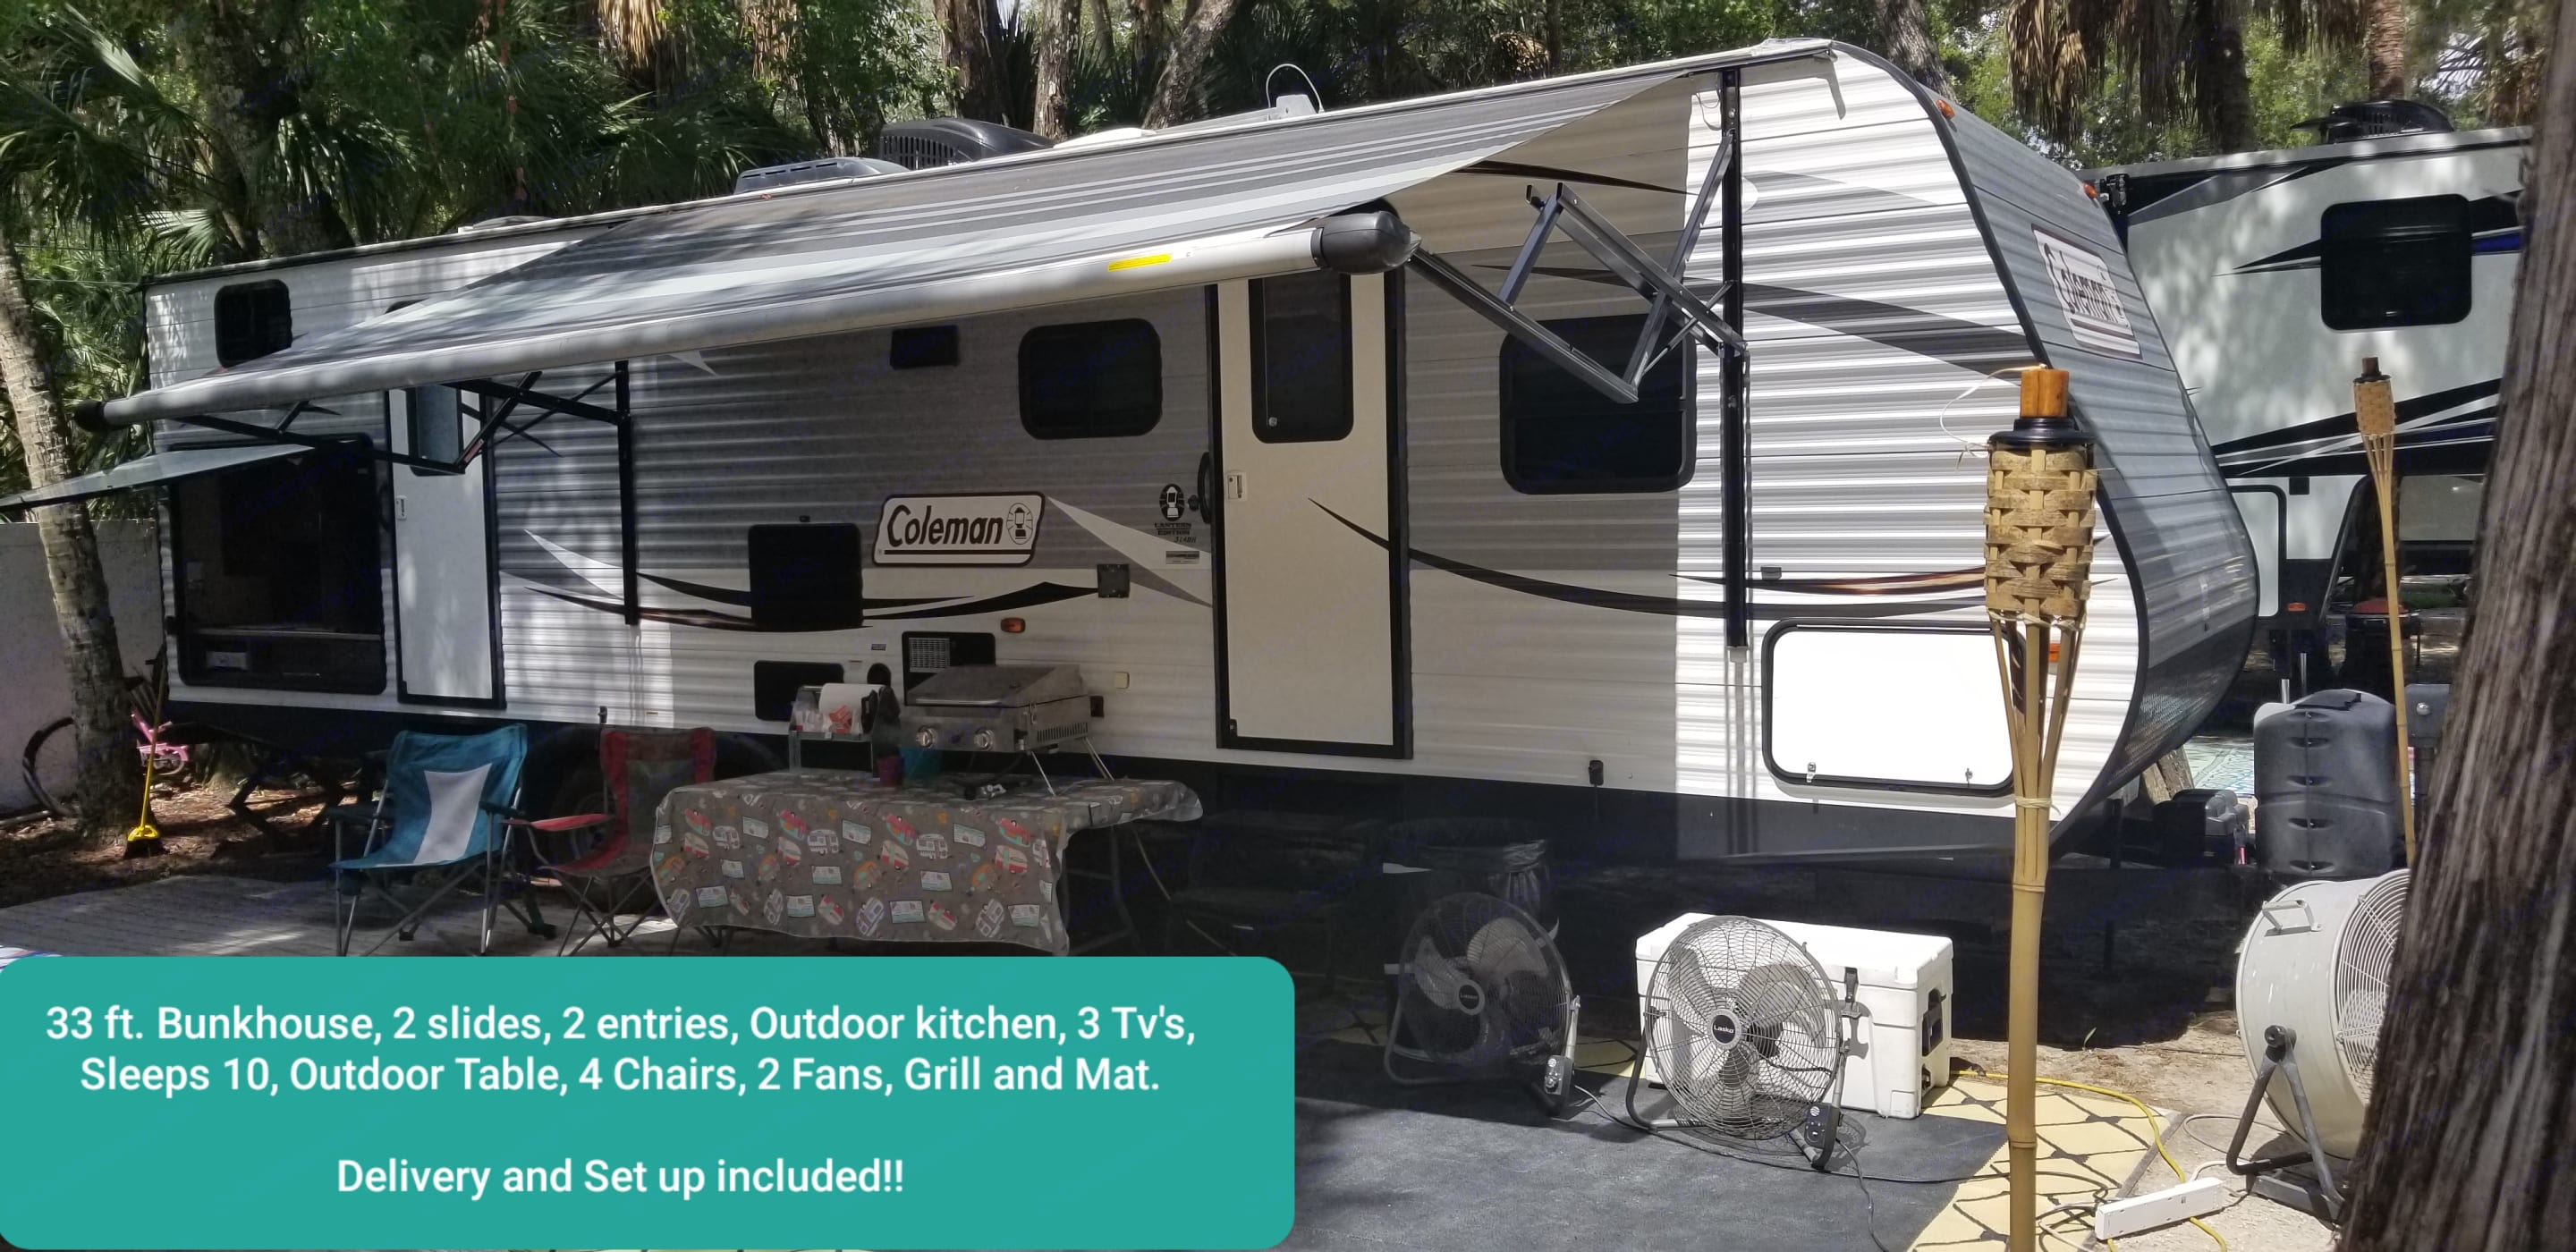 FREE Setup and Delivery, INCLUDED FREE Table, 4 chairs, 2 fans, Grill, mat.*SEE FULL PHOTOS CLICK AND HOLD DOWN ON PHOTO THEN HIT VIEW PHOTO. Coleman Explorer lantern bunkhouse series 2016